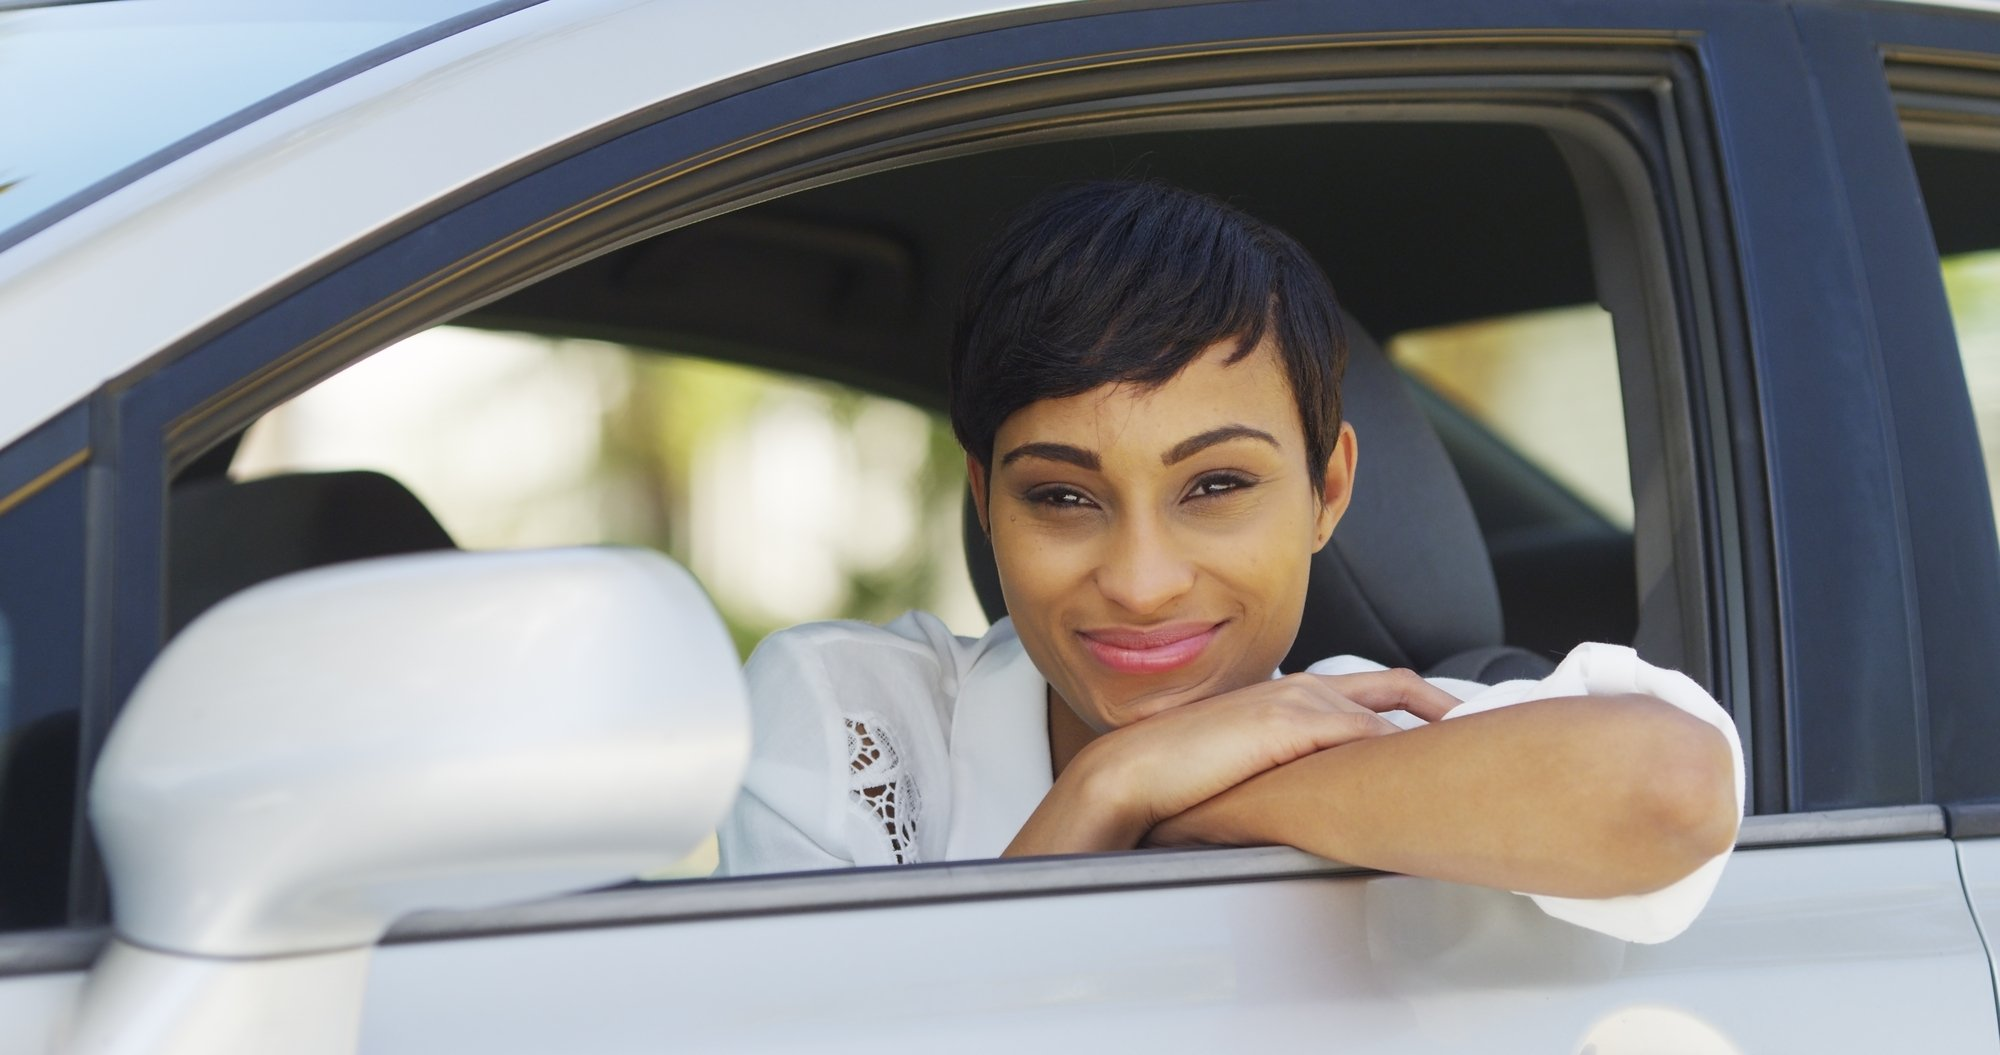 Black woman smiling and looking out of car window